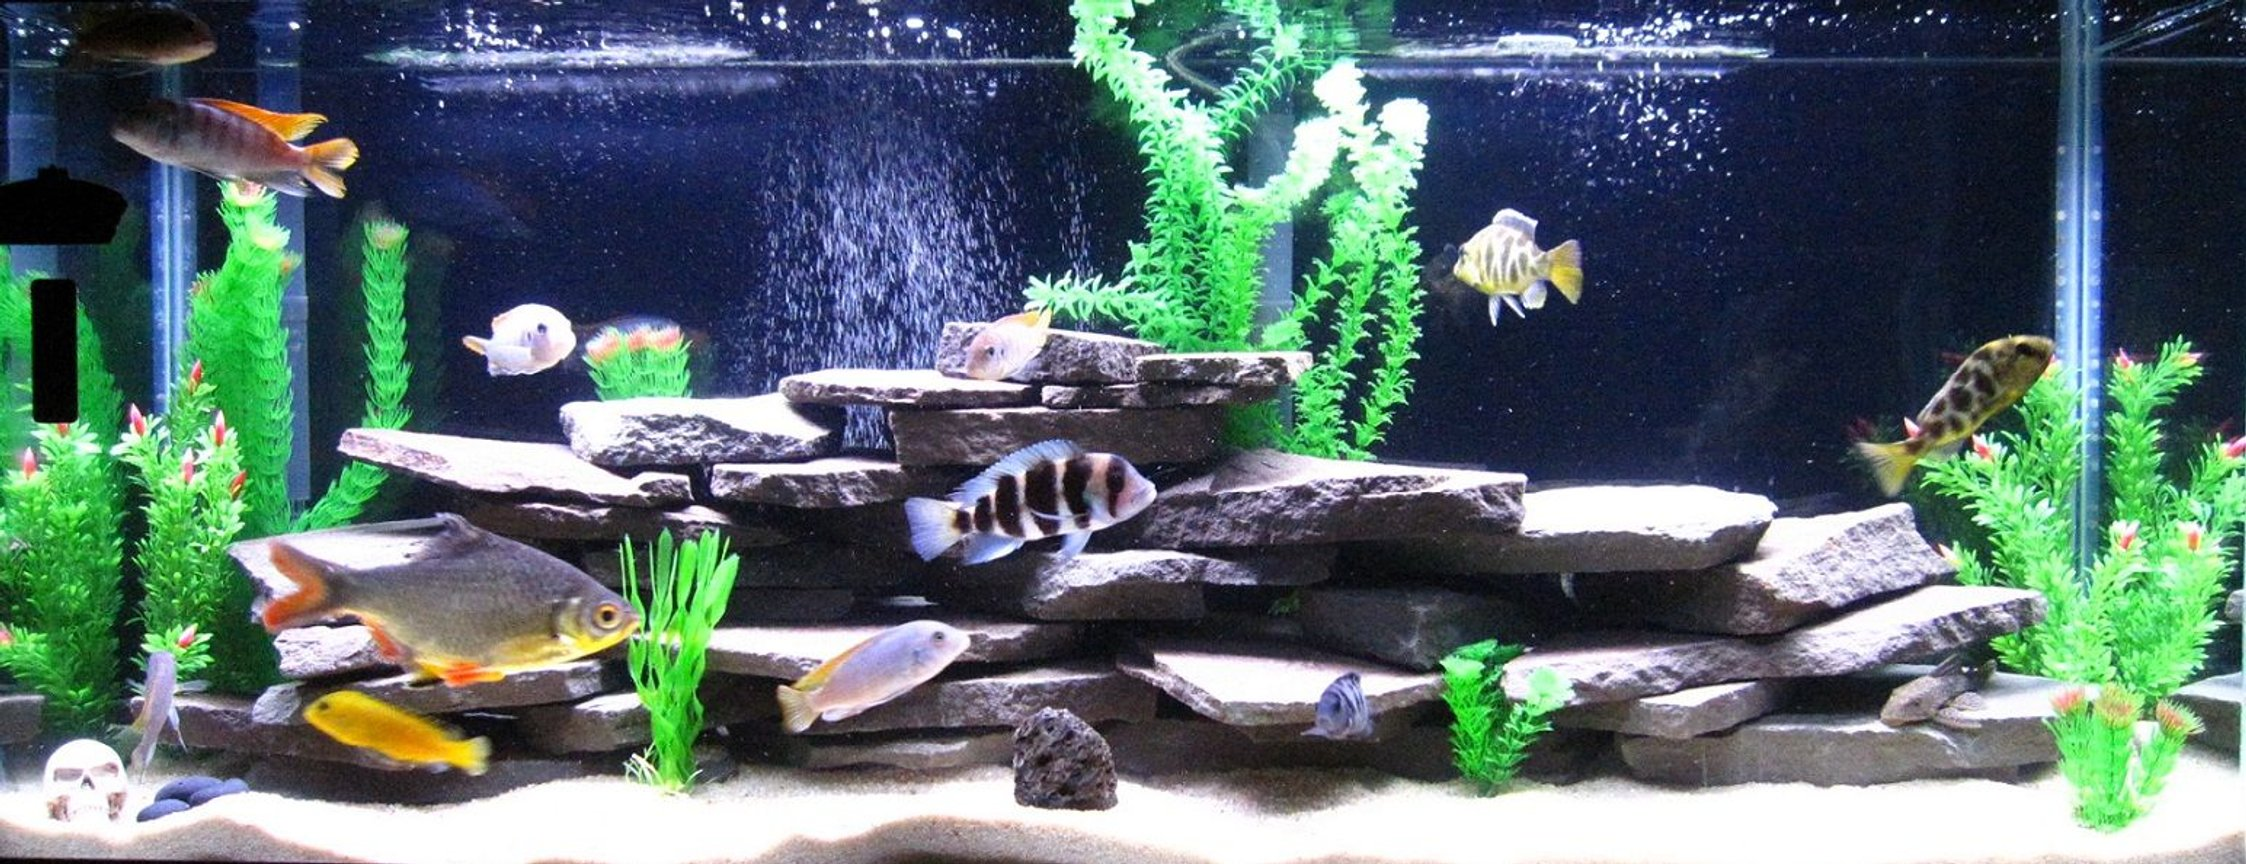 55 gallons freshwater fish tank (mostly fish and non-living decorations) - 55 Gallon Chiclid Tank